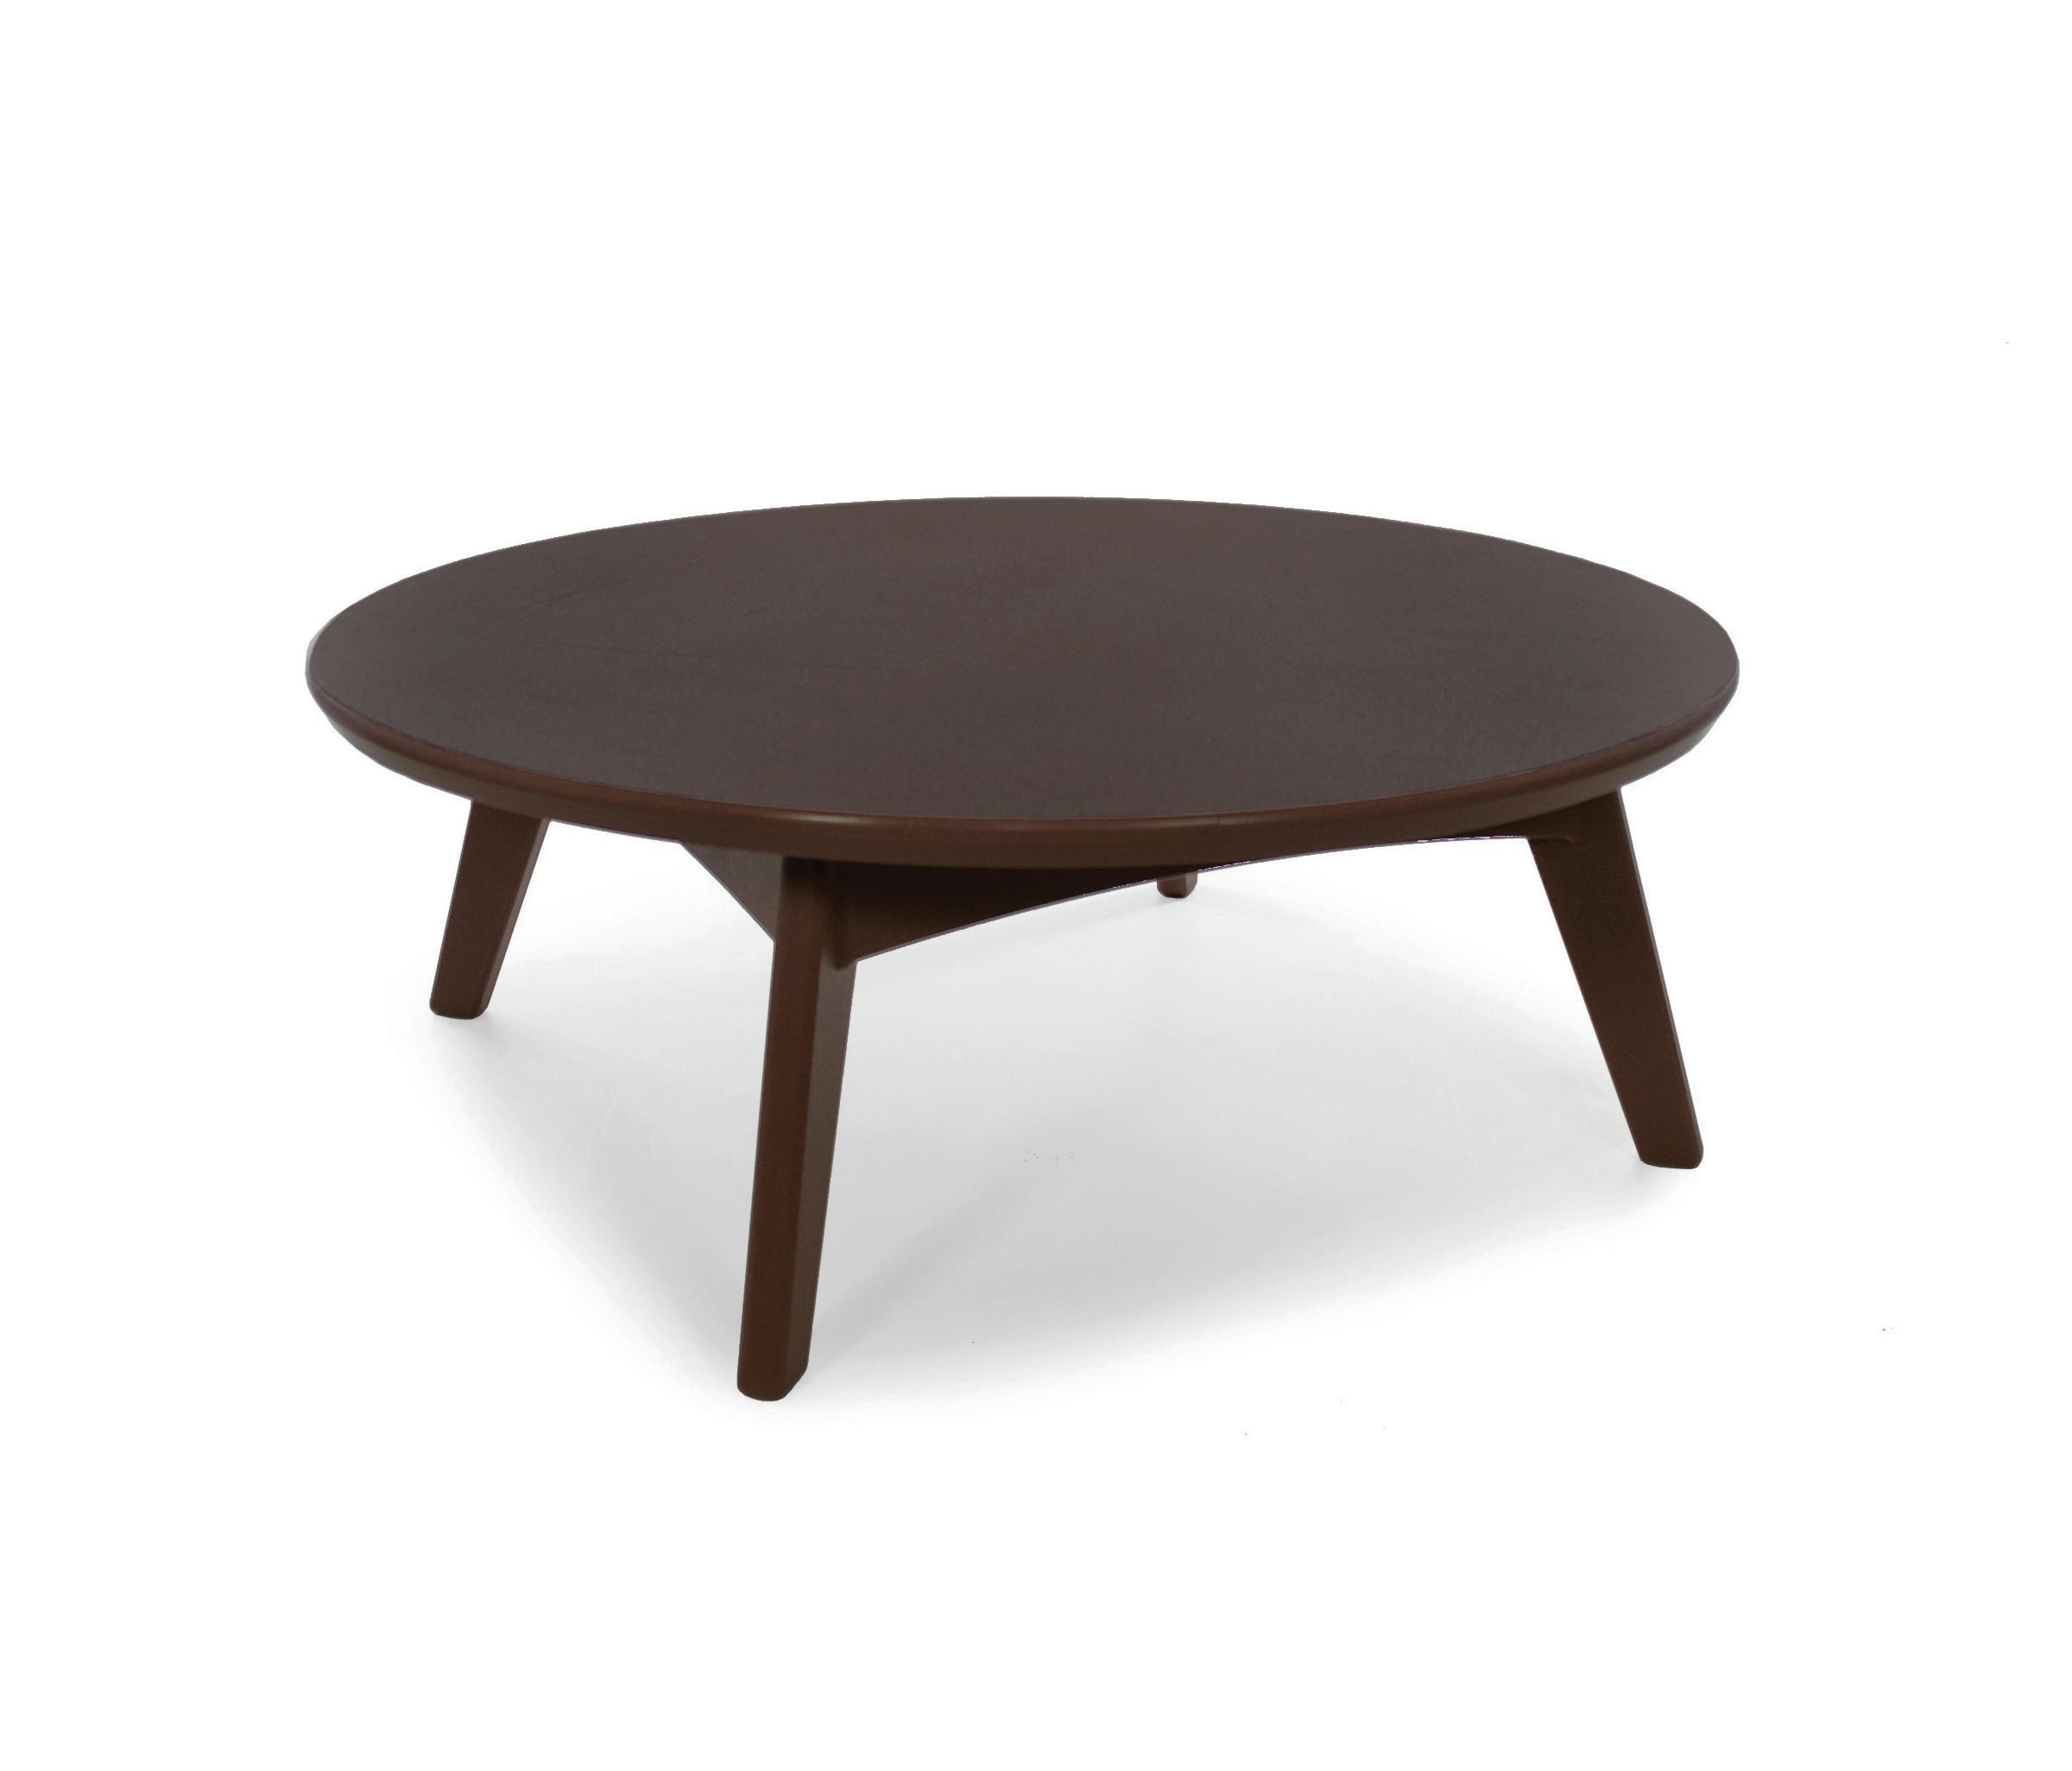 Satellite cocktail table round coffee tables from loll for Cocktail tables round